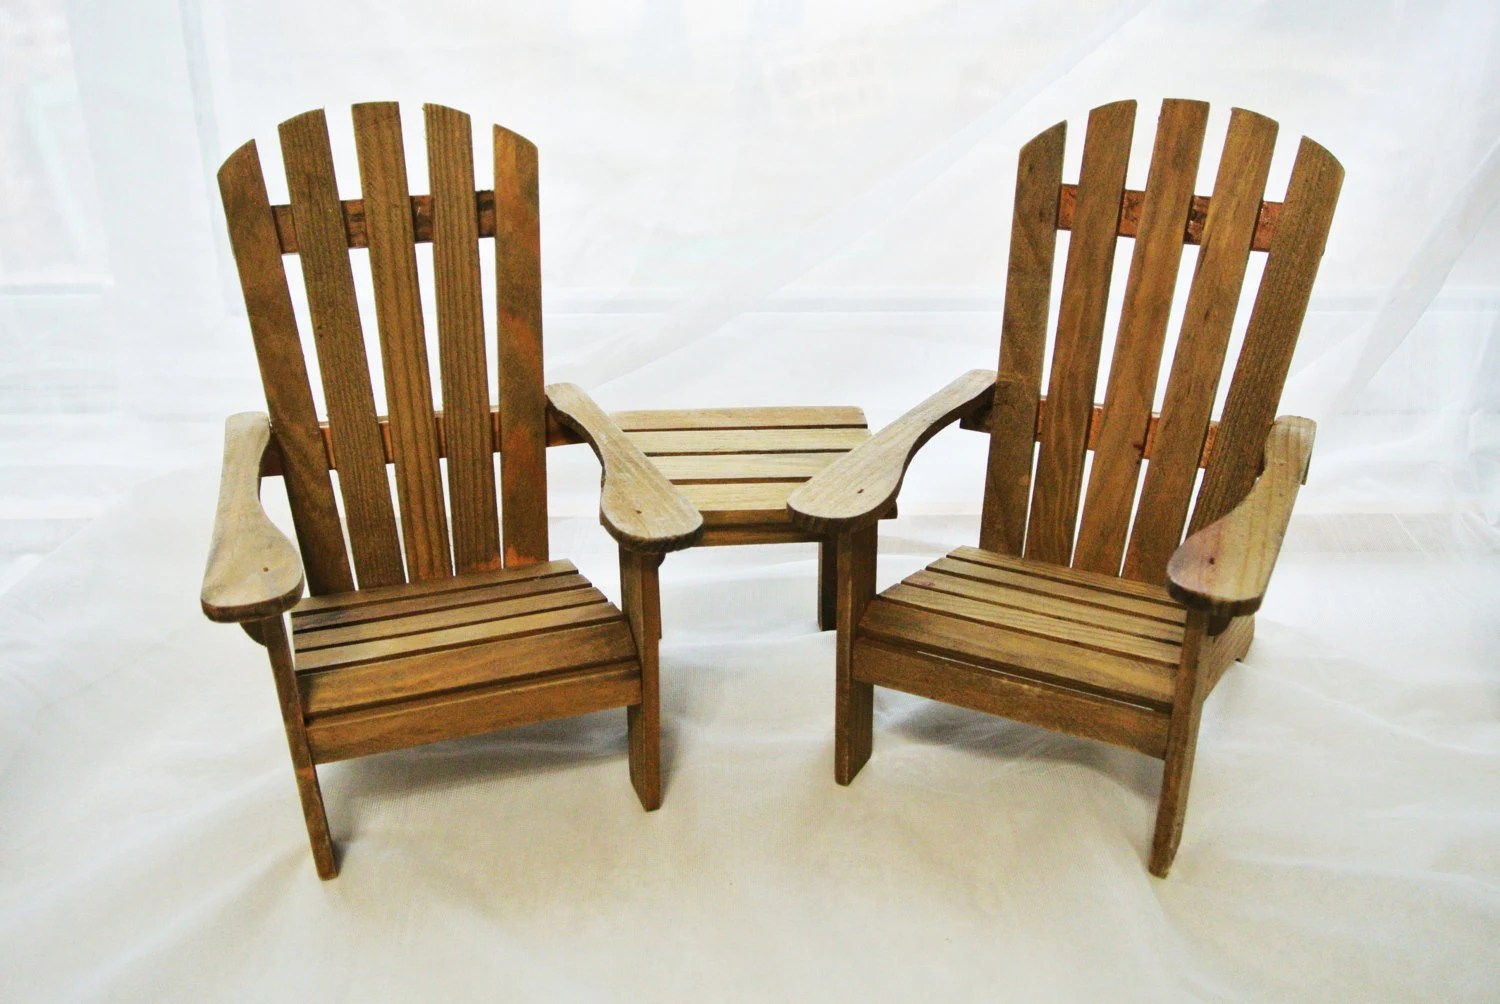 Mini Adirondack Chairs Miniature Adirondack Chairs And Table